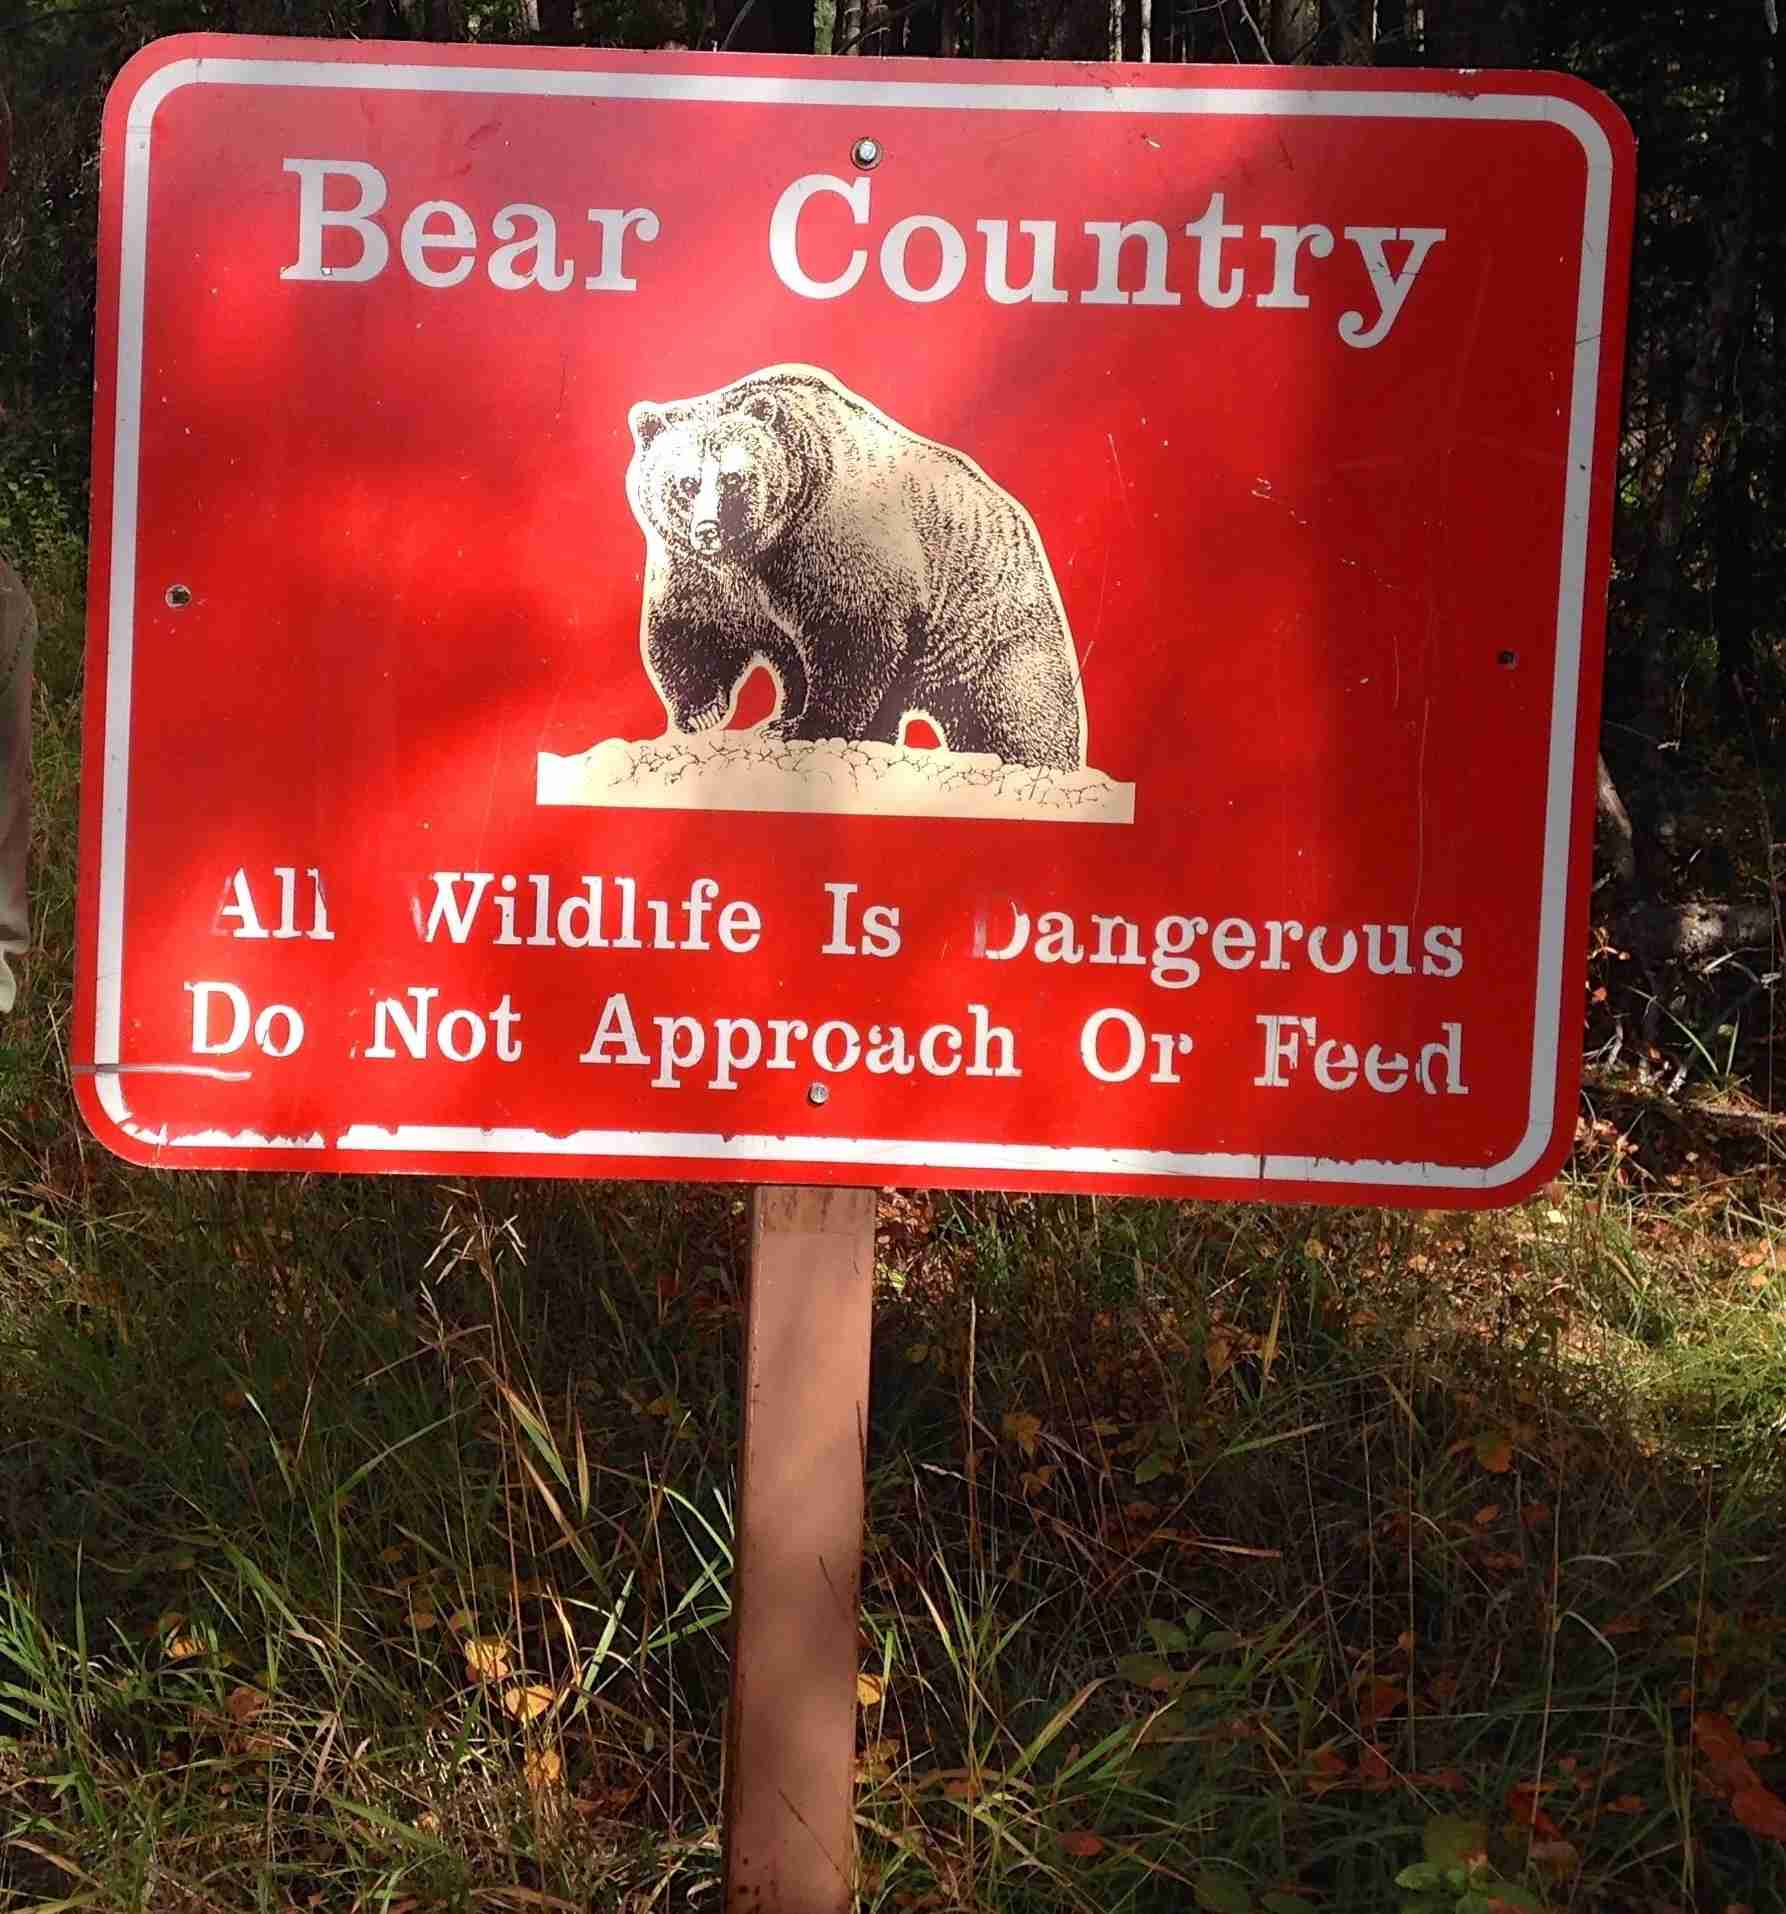 Glacier National Park bear warning sign. September 2014. (Photo by Clint Henderson/The Points Guy)